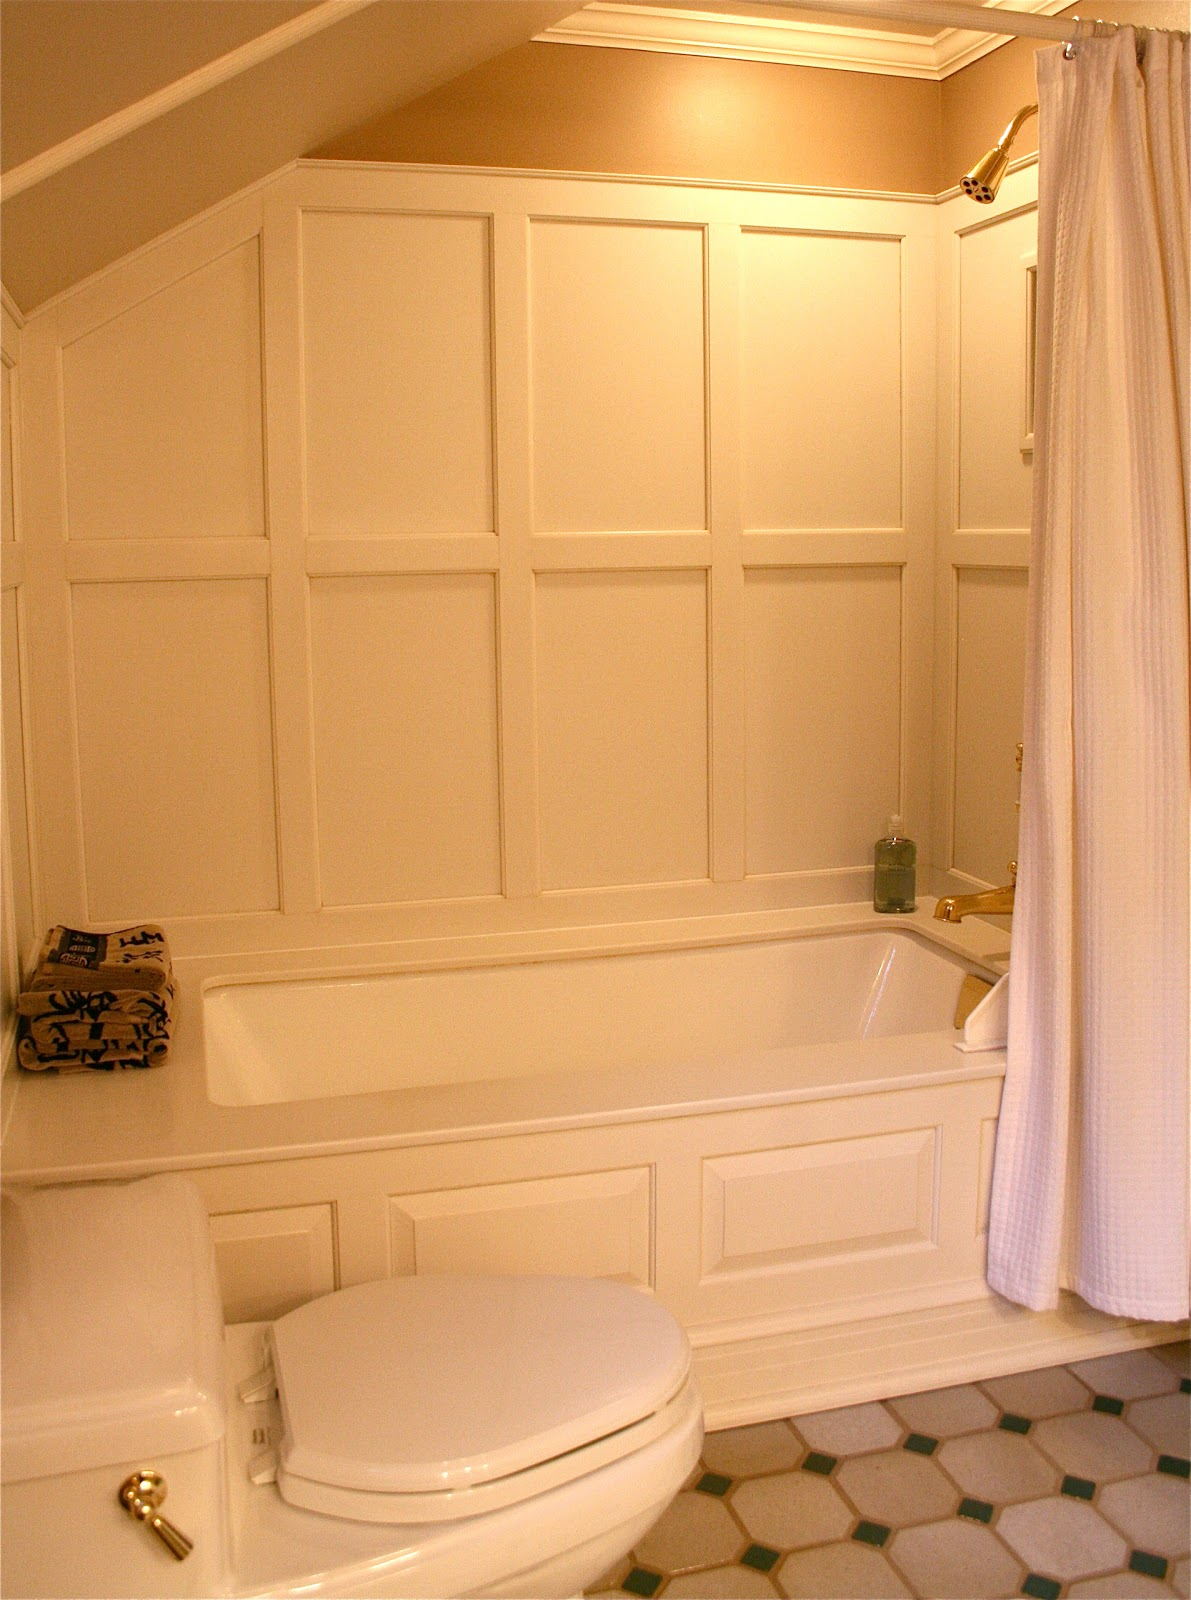 antiqueaholics bathtub surround paneled with corian. Black Bedroom Furniture Sets. Home Design Ideas